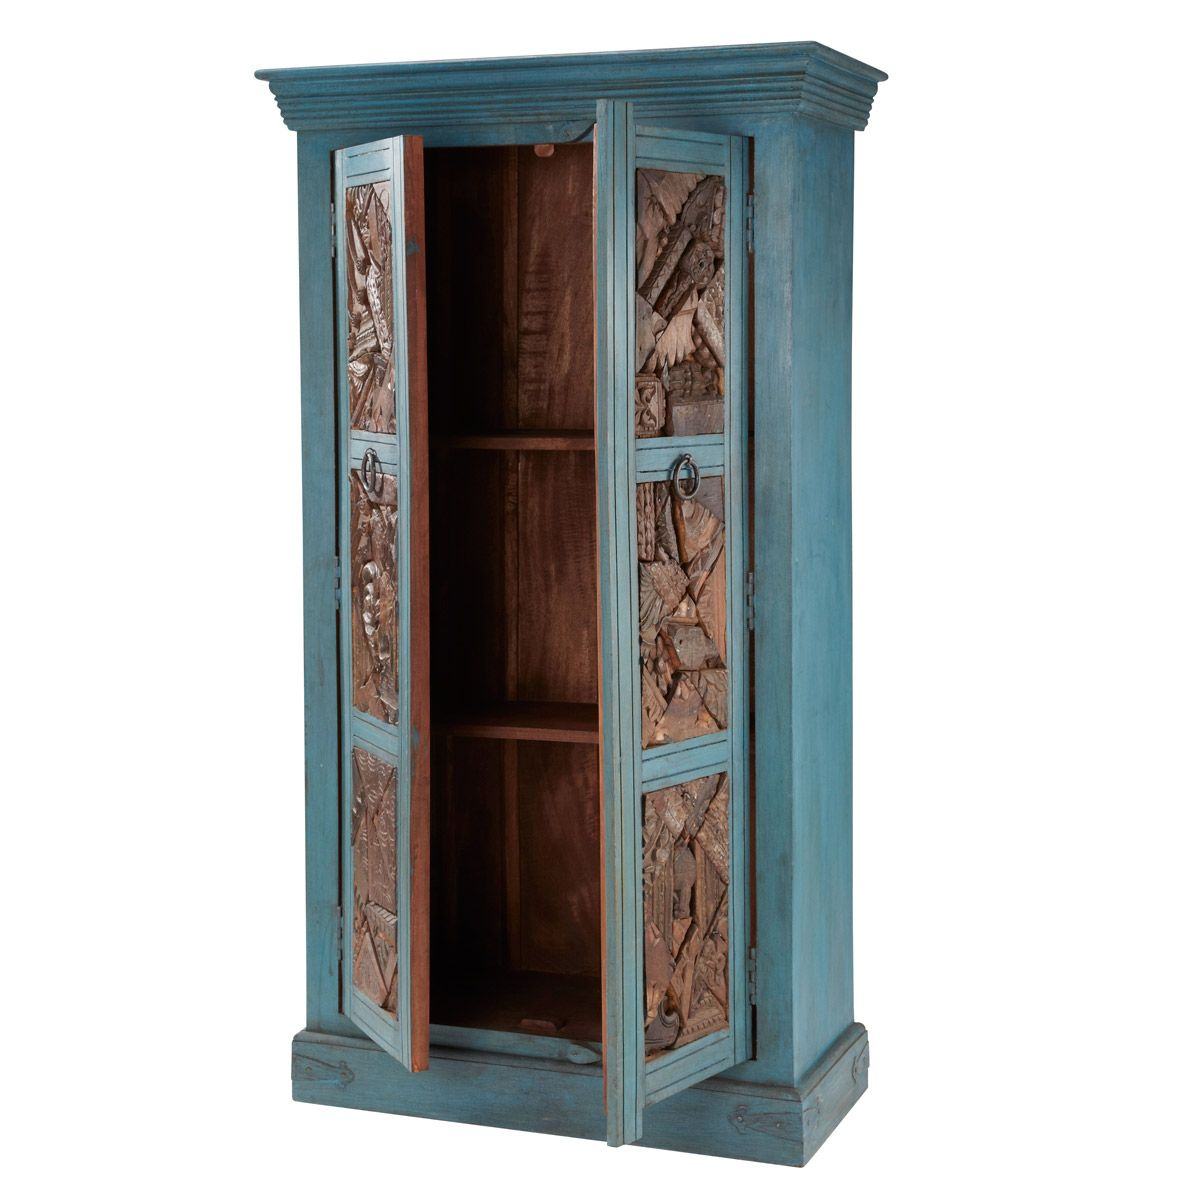 armoire jodhpur this indian furniture has two doors carved from reused wood originating from. Black Bedroom Furniture Sets. Home Design Ideas